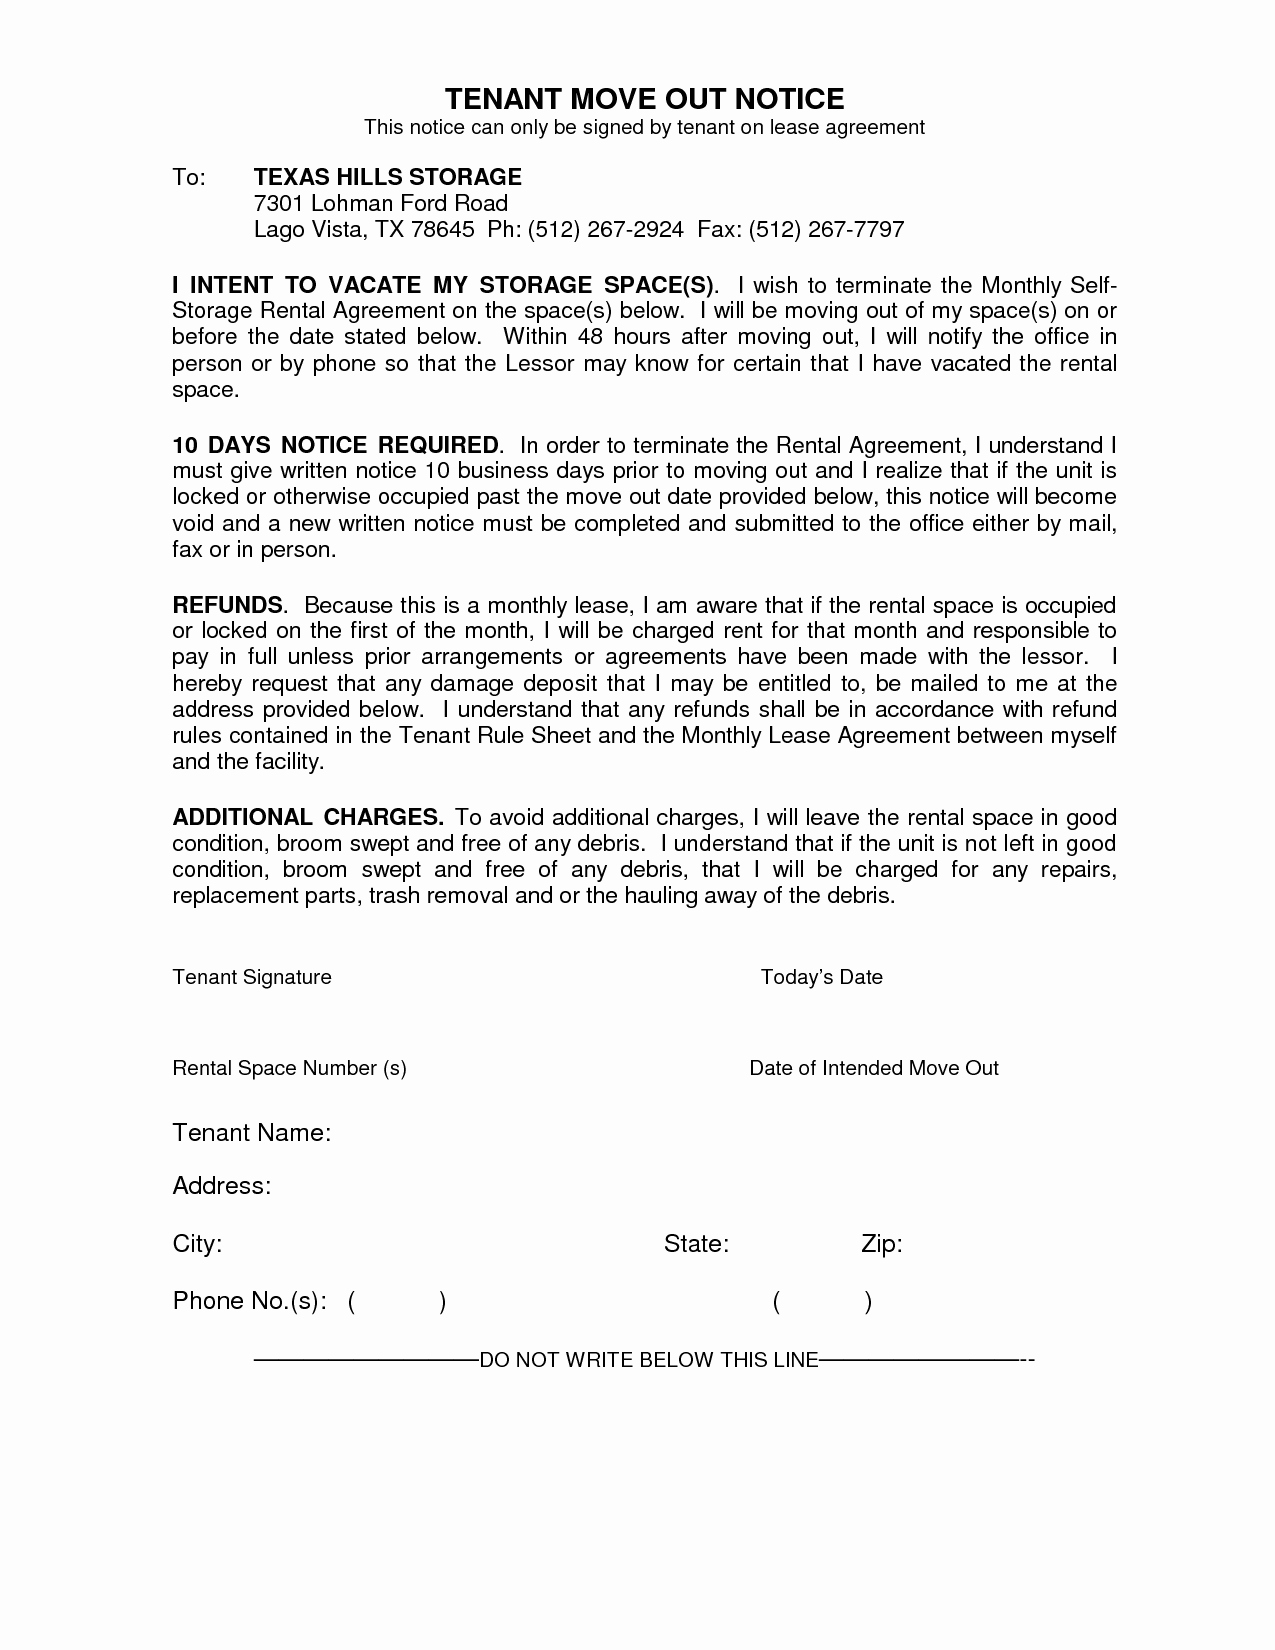 Child Relocation Agreement Template New Best S Of Request to Move Out Letter Move Out